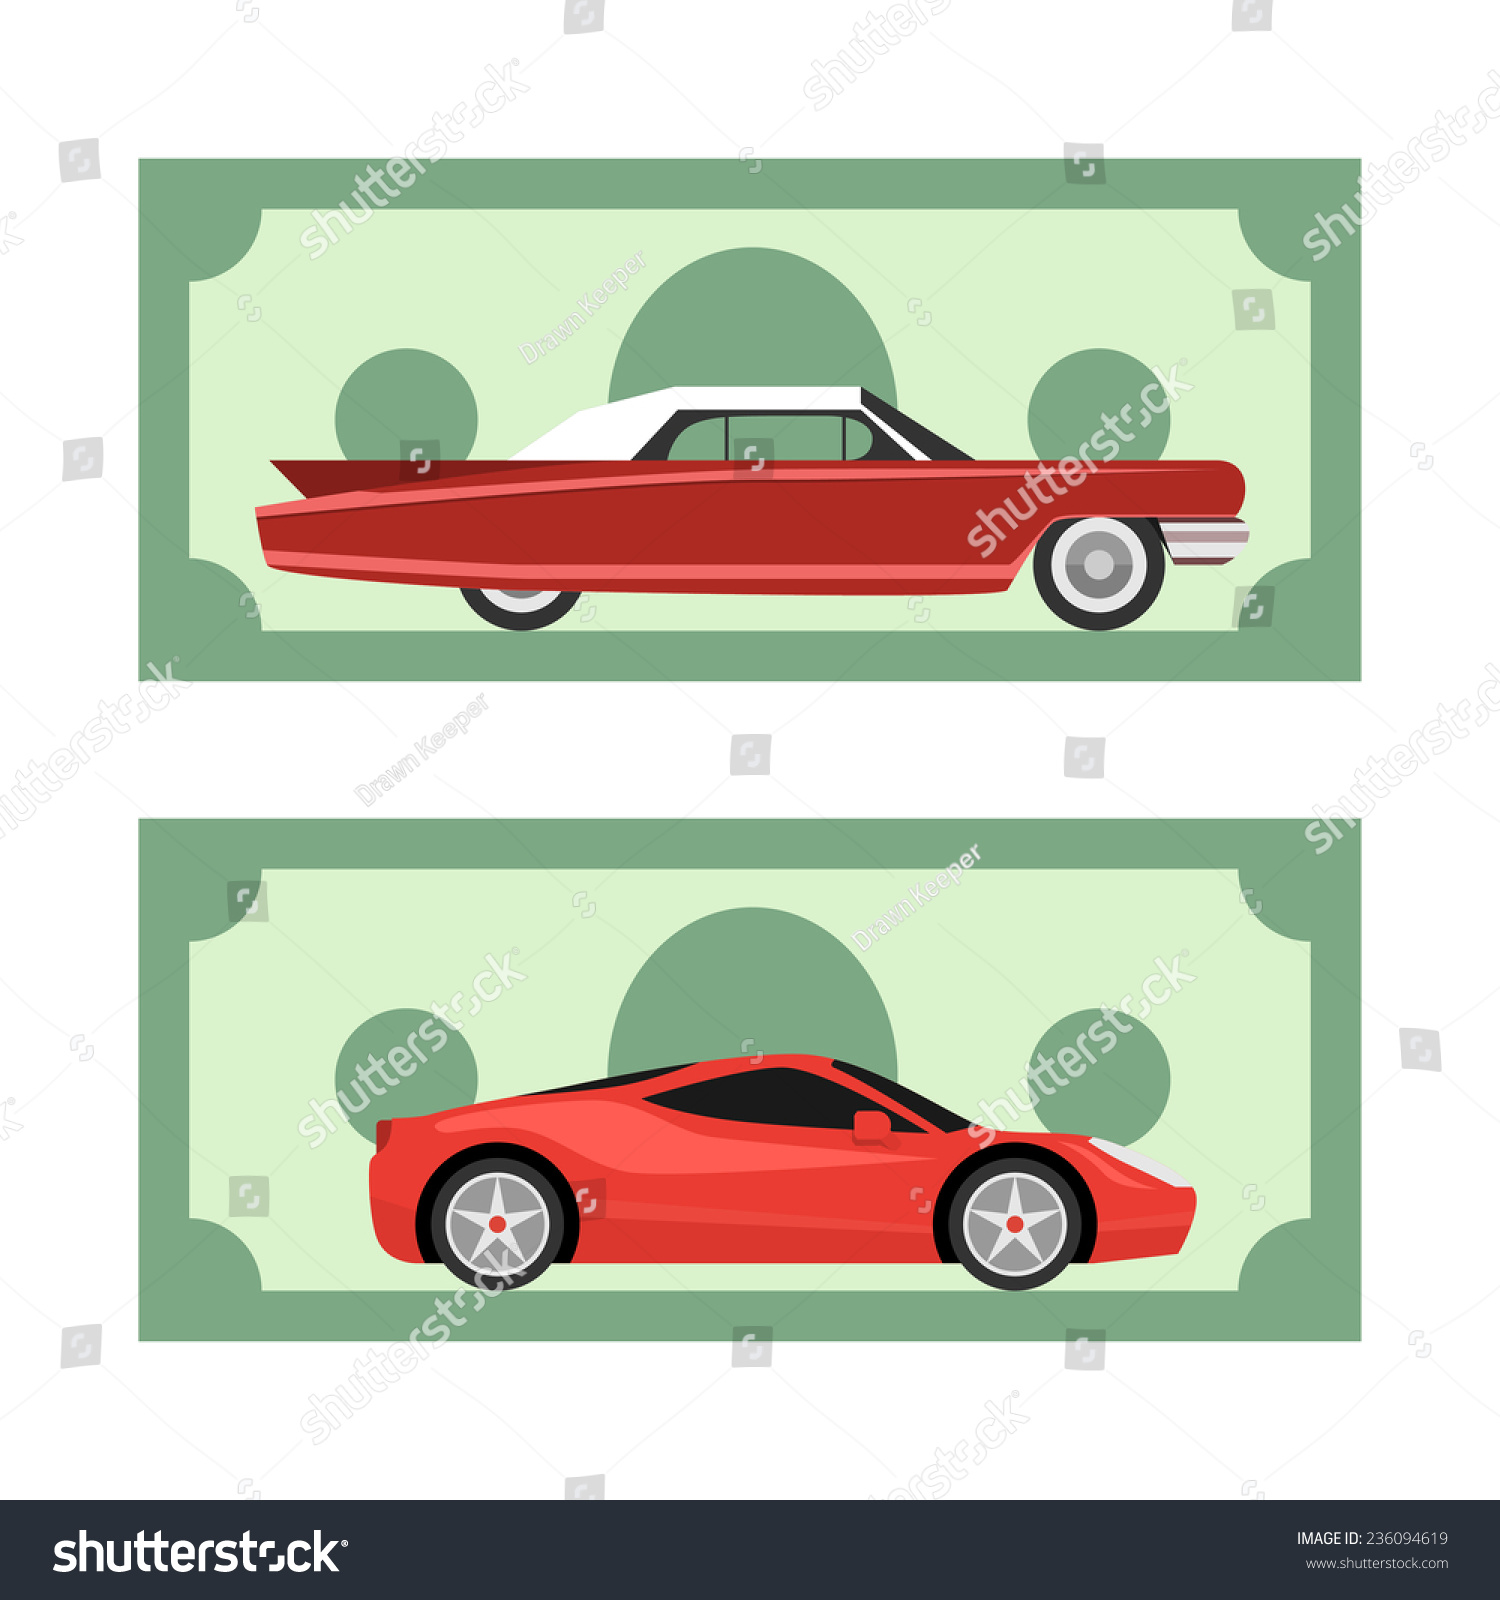 Old New Cars On Dollar Money Stock Vector 236094619 - Shutterstock